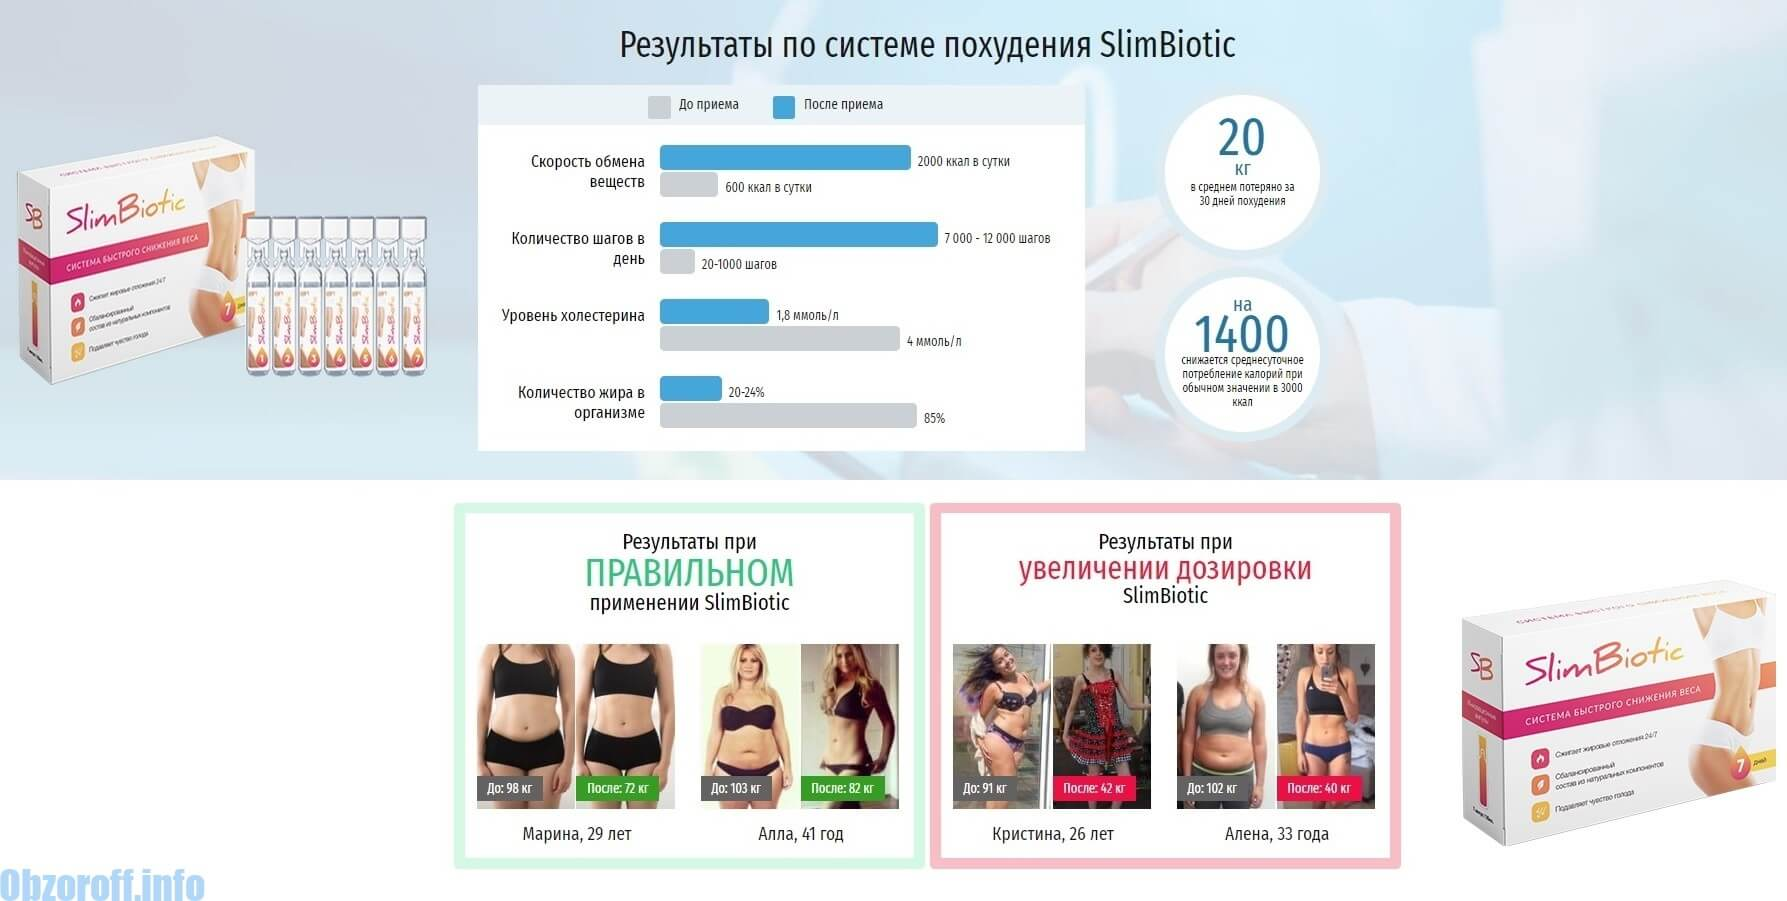 The effectiveness of losing weight with the drug SlimBiotic